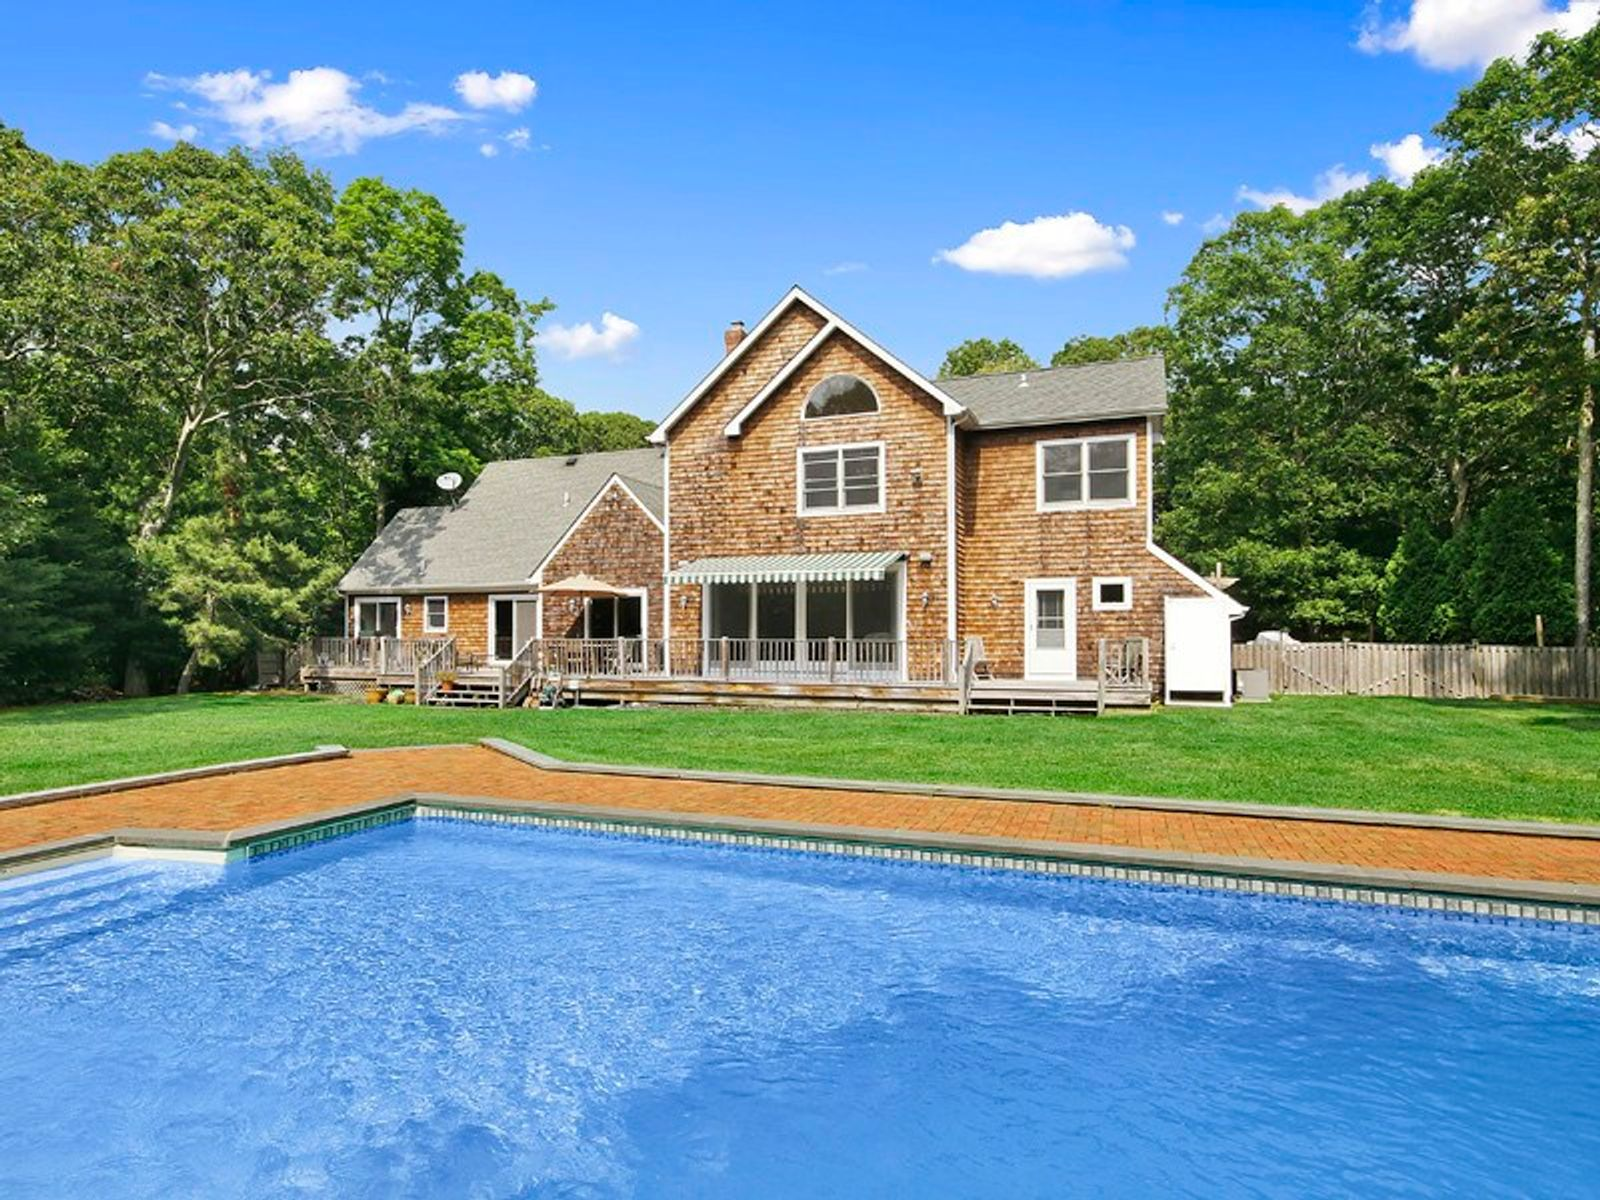 Immaculate Traditional, By Access, Southampton NY Single Family Home - Hamptons Real Estate